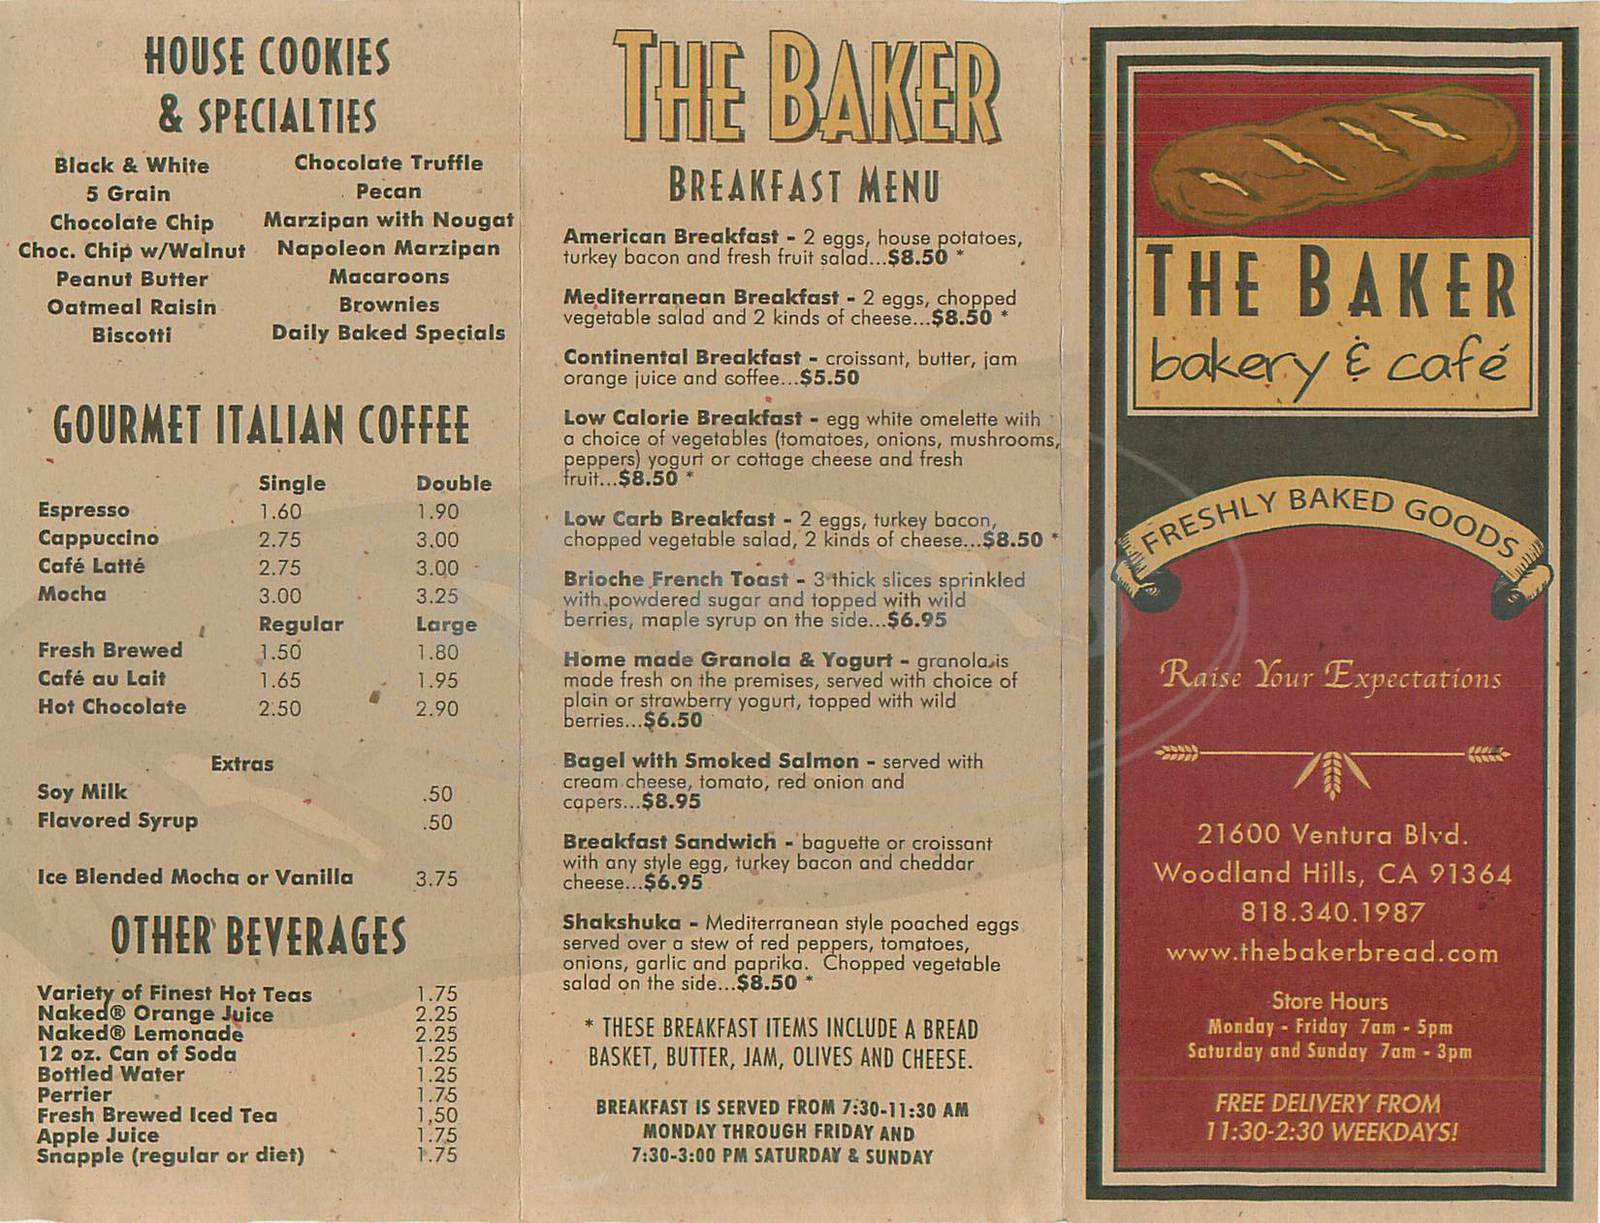 menu for The Baker Bakery & Cafe